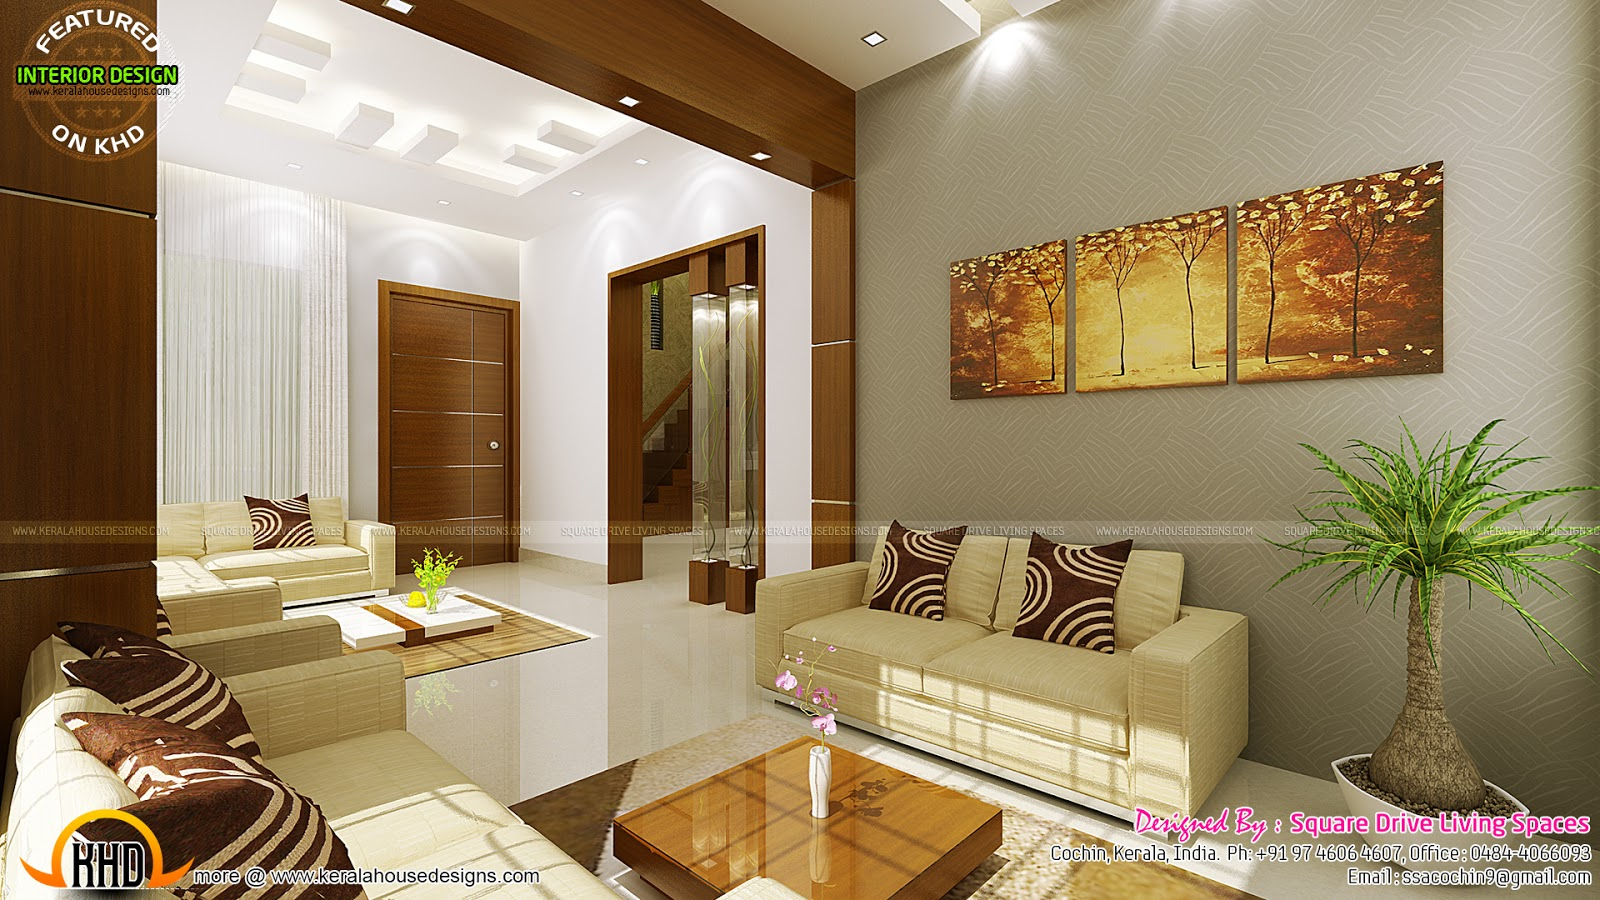 Contemporary kitchen dining and living room kerala home How to design your house interior